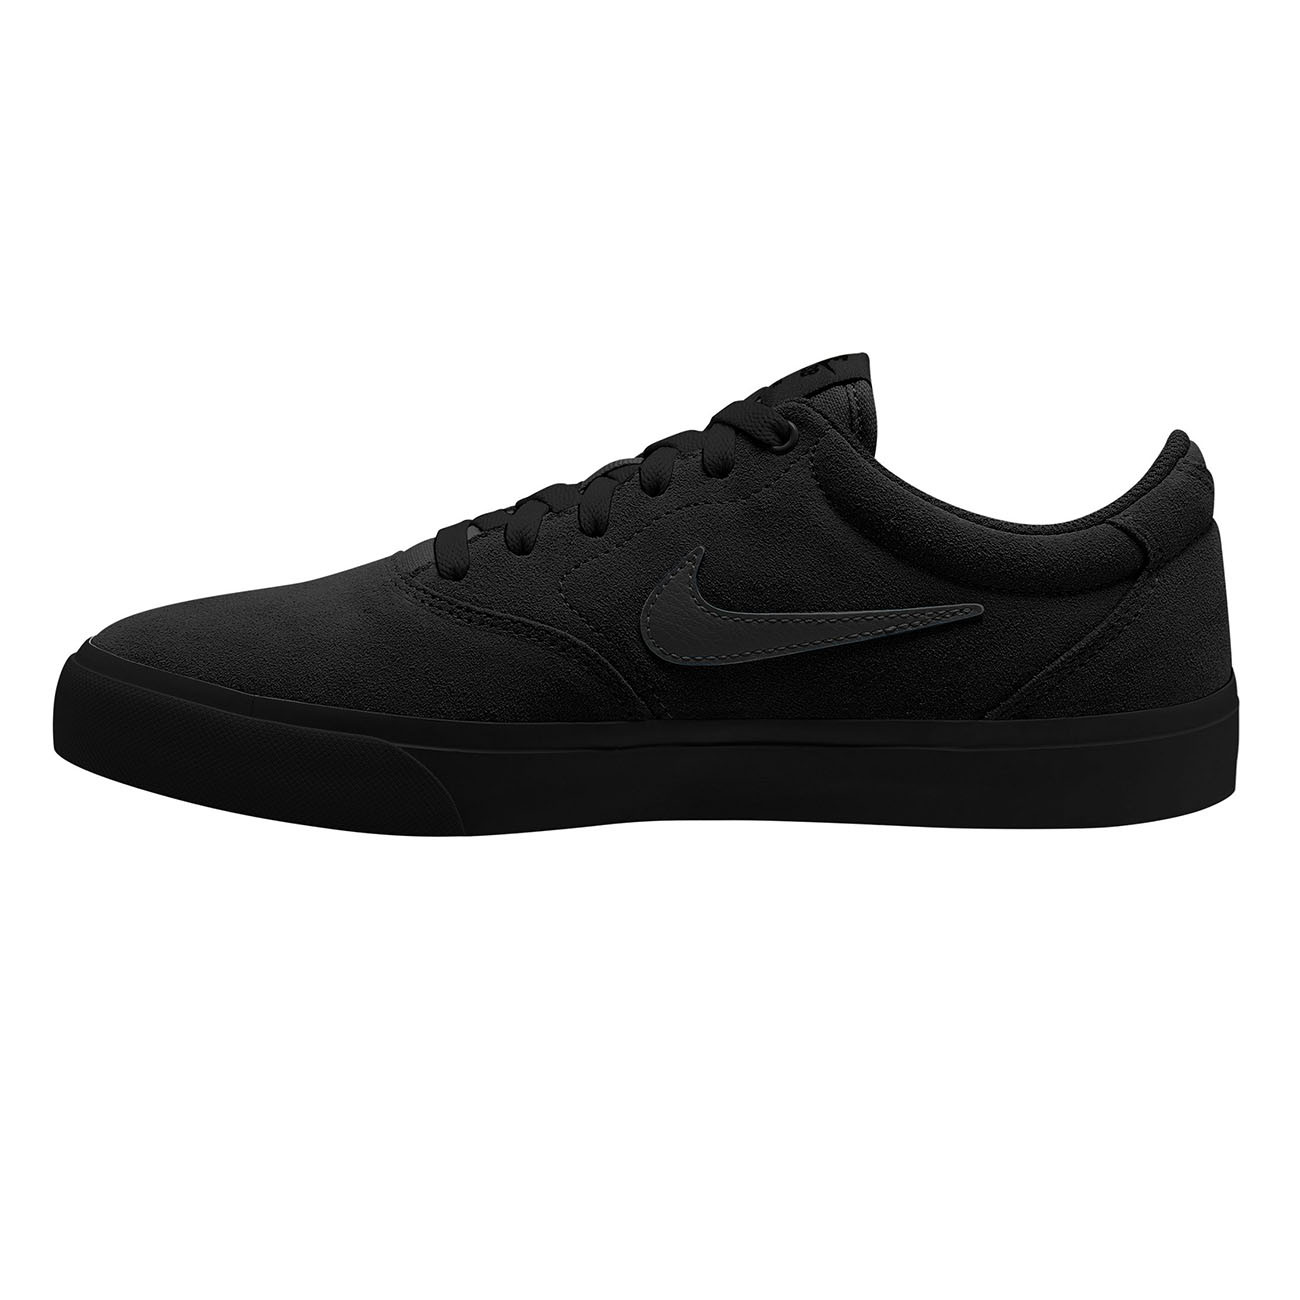 Skate boty Nike SB Charge Suede